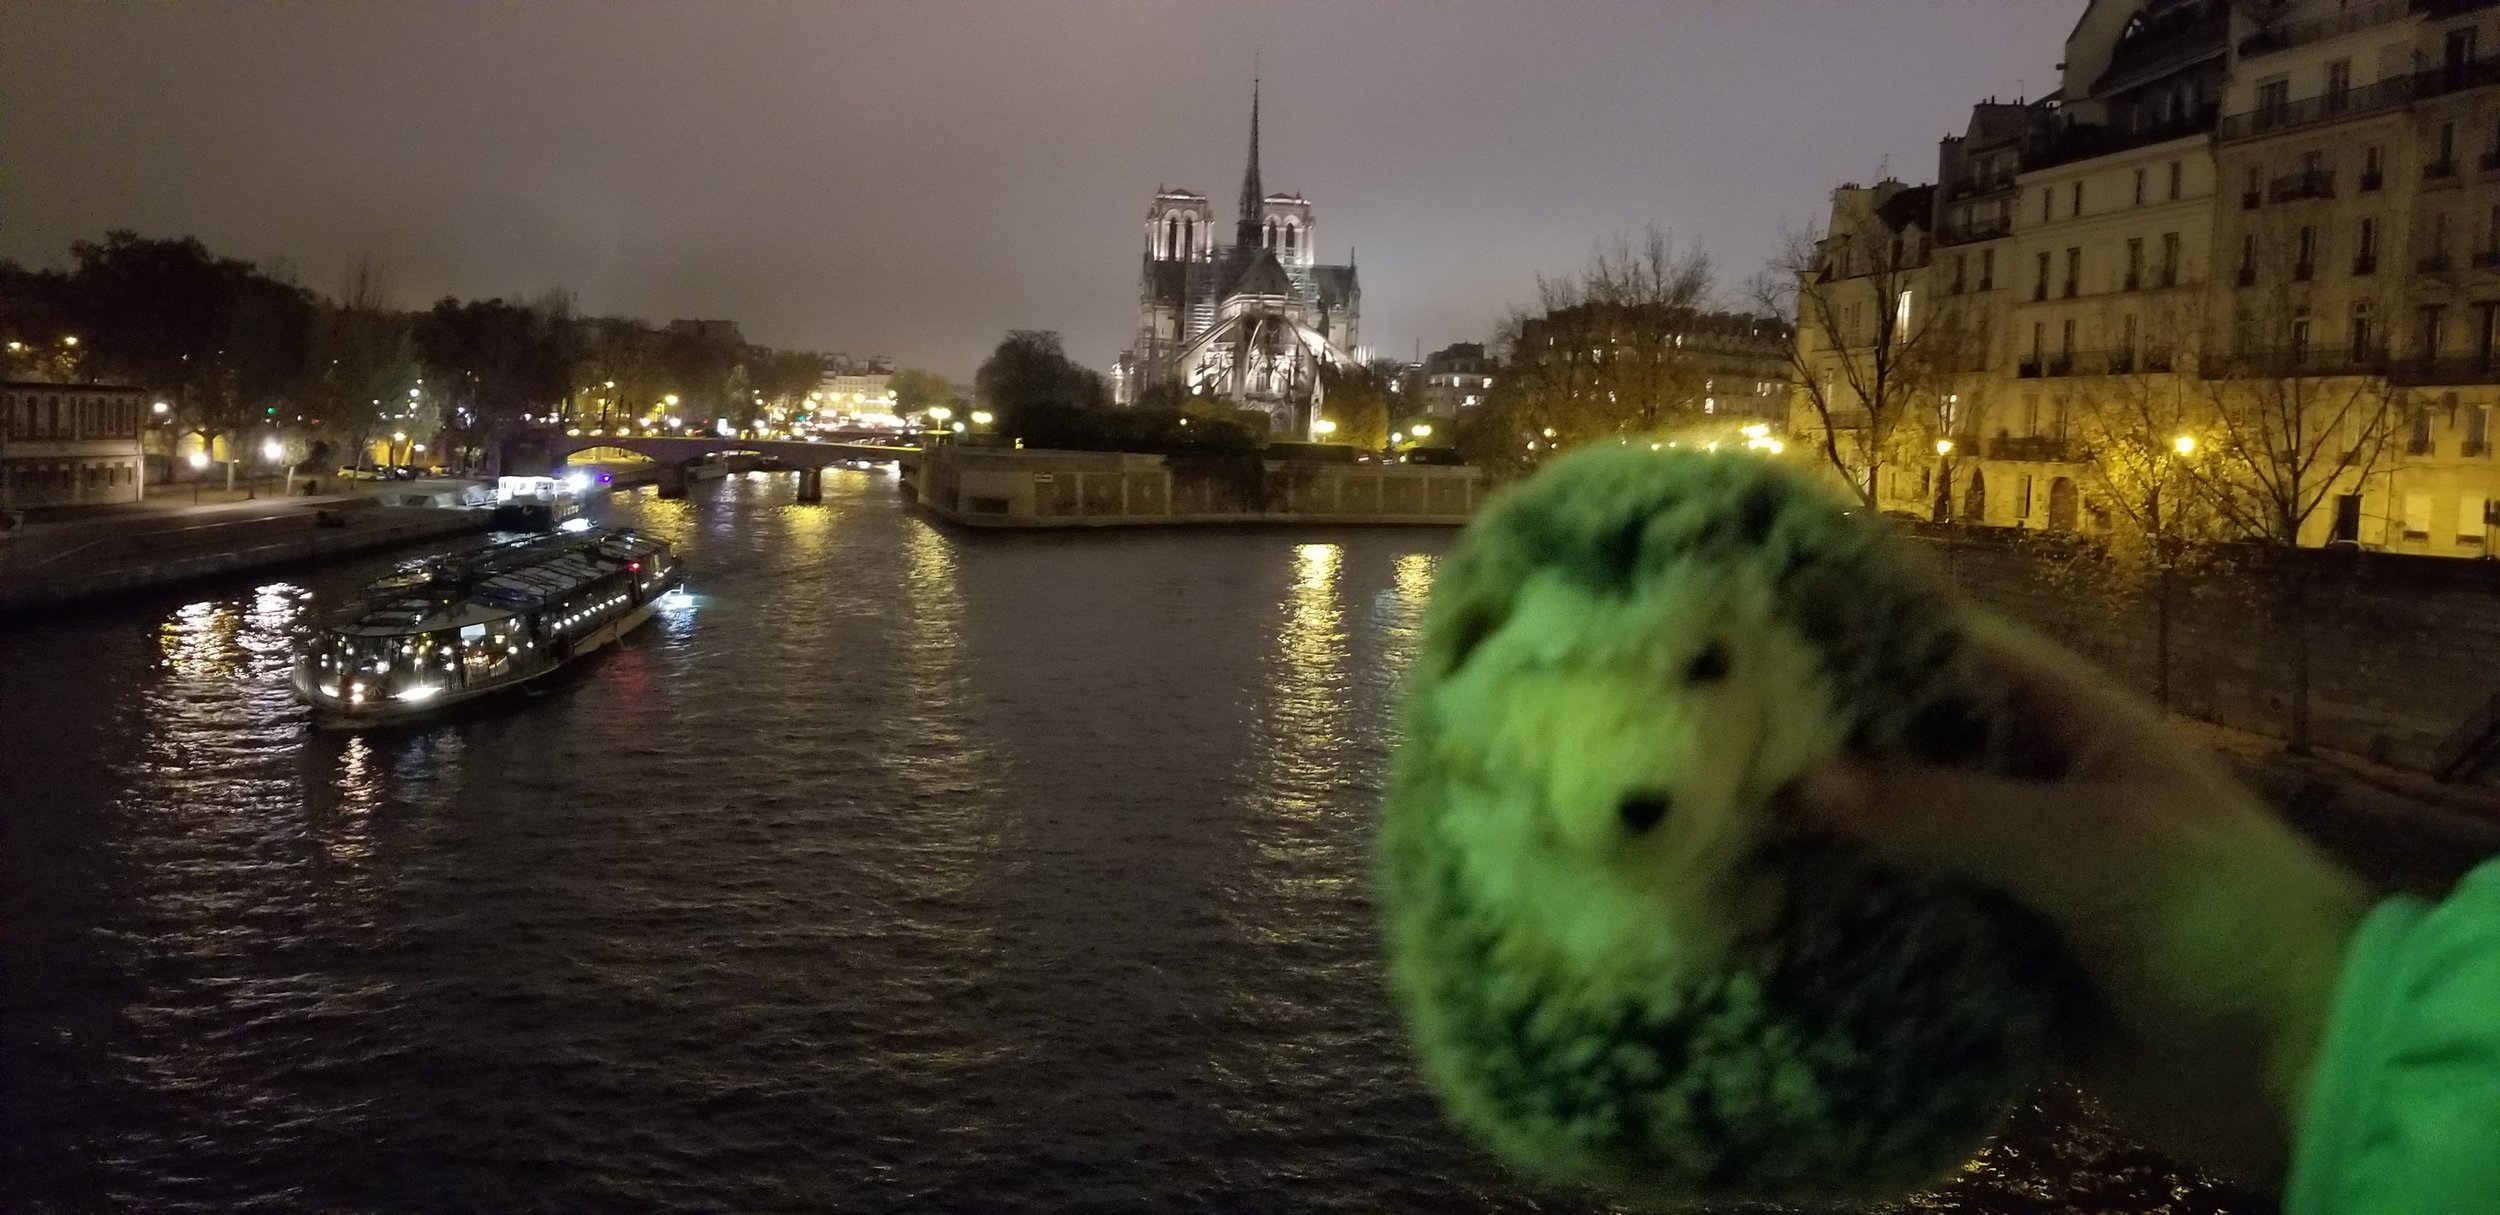 Man…. what a looooong day! I was feeling a little green by the time night arrived - but what amazing sights - that's the Notre Dame again! Sophie dragged me EVERYWHERE - glad she did